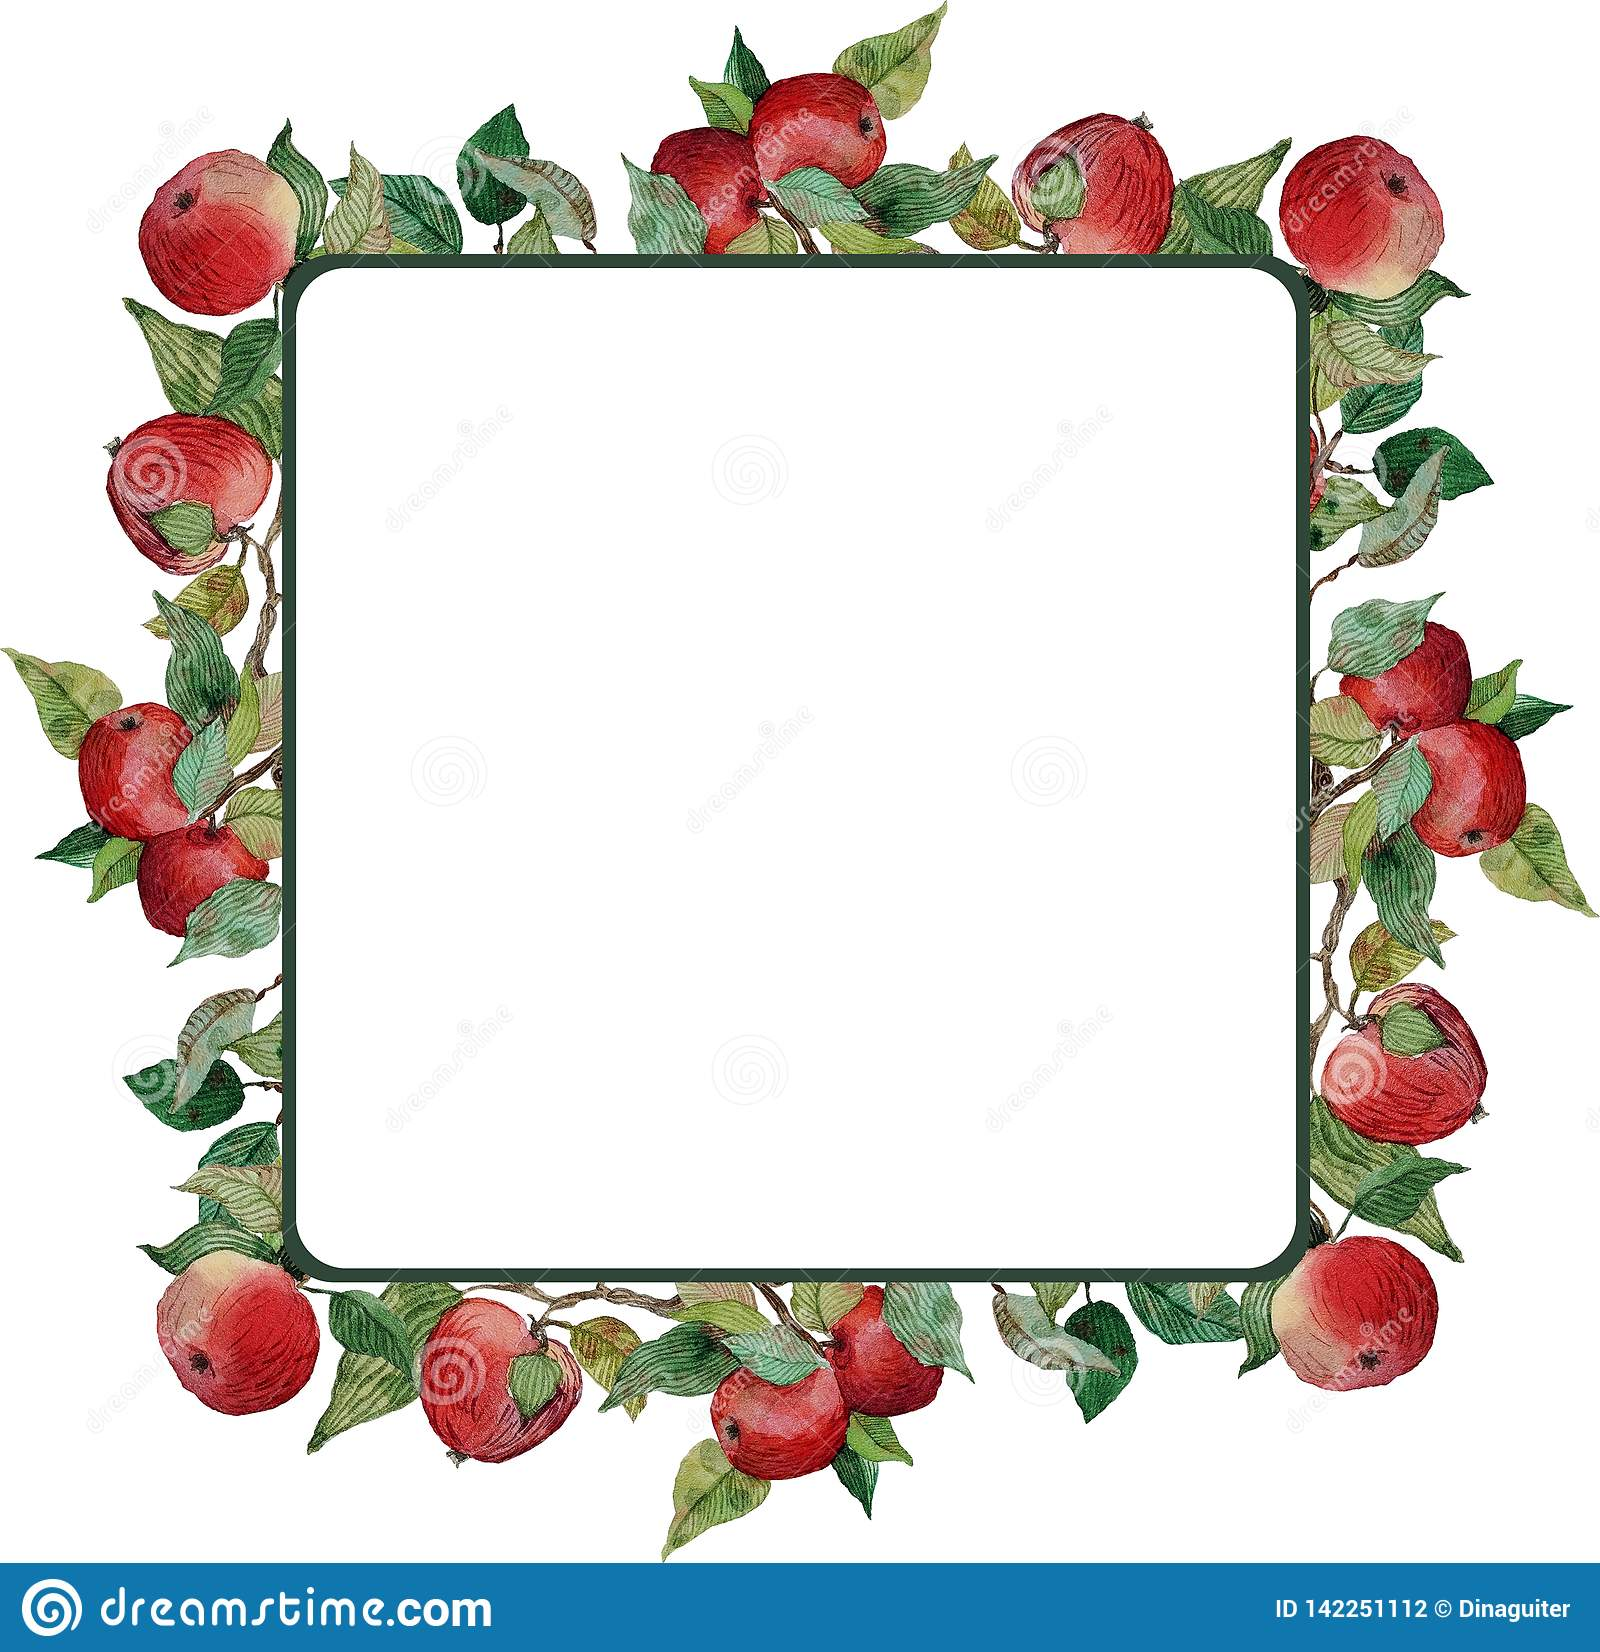 Square wreath red apples leaves branches ornament